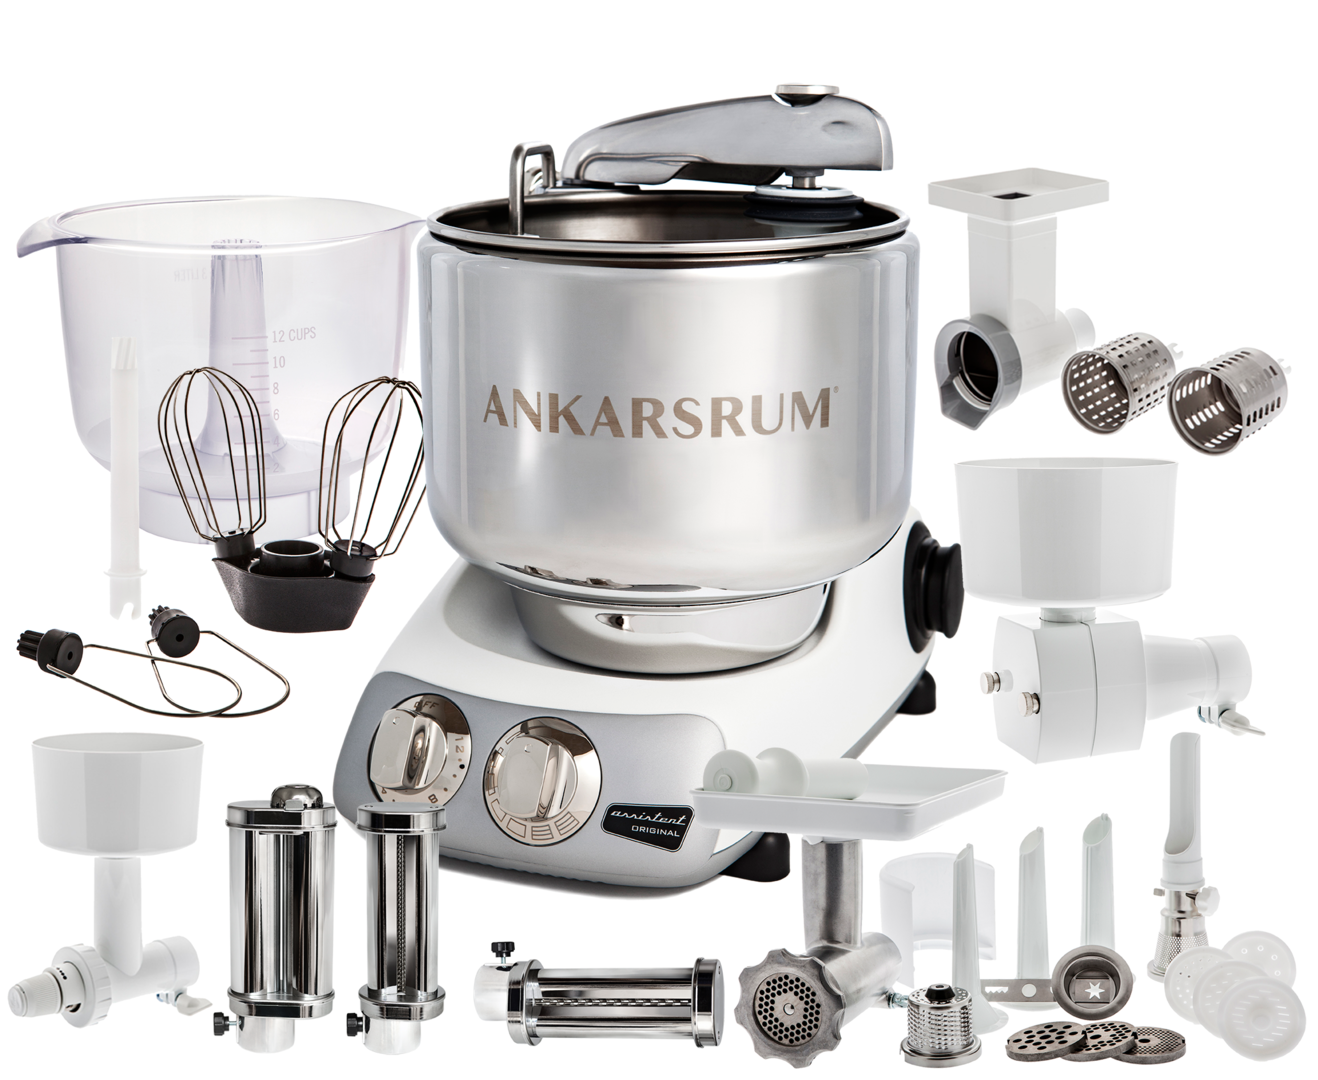 Ankarsrum Original AKM6220B Total mixer, White (2300101)